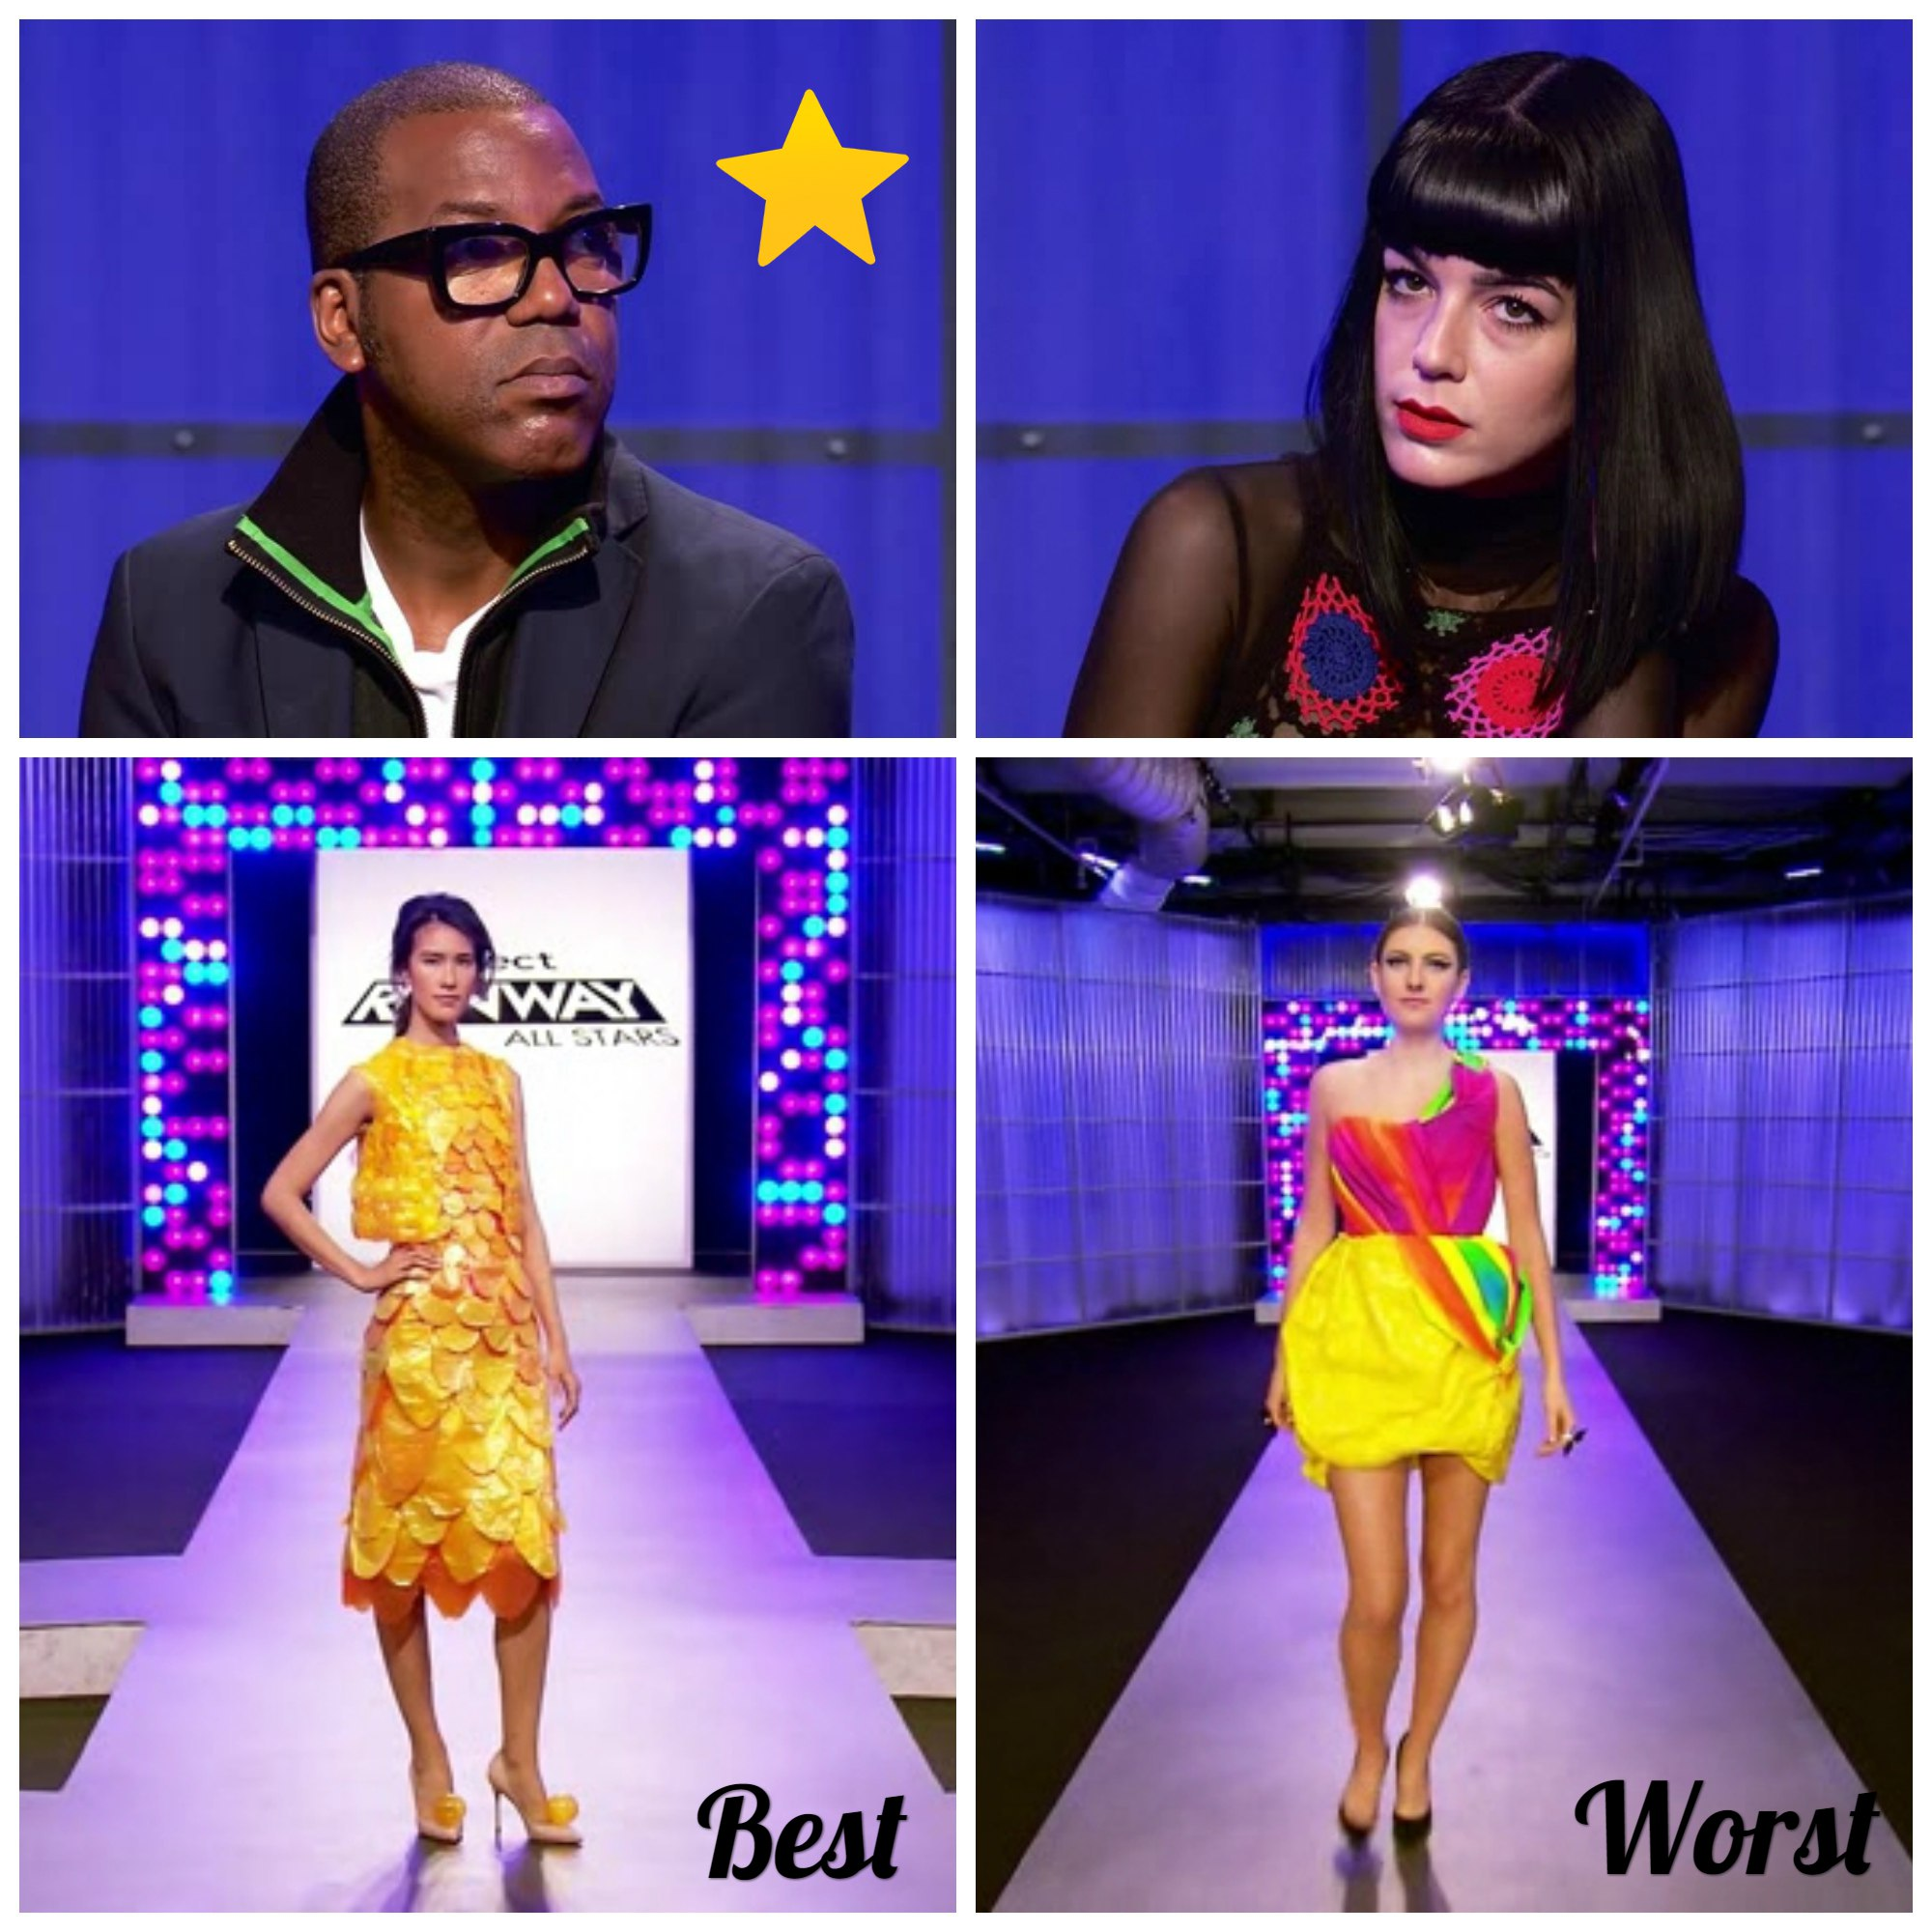 Project Runway All Stars 2018 episode 4 s06e04 best and worst designs, who was eliminated, winner